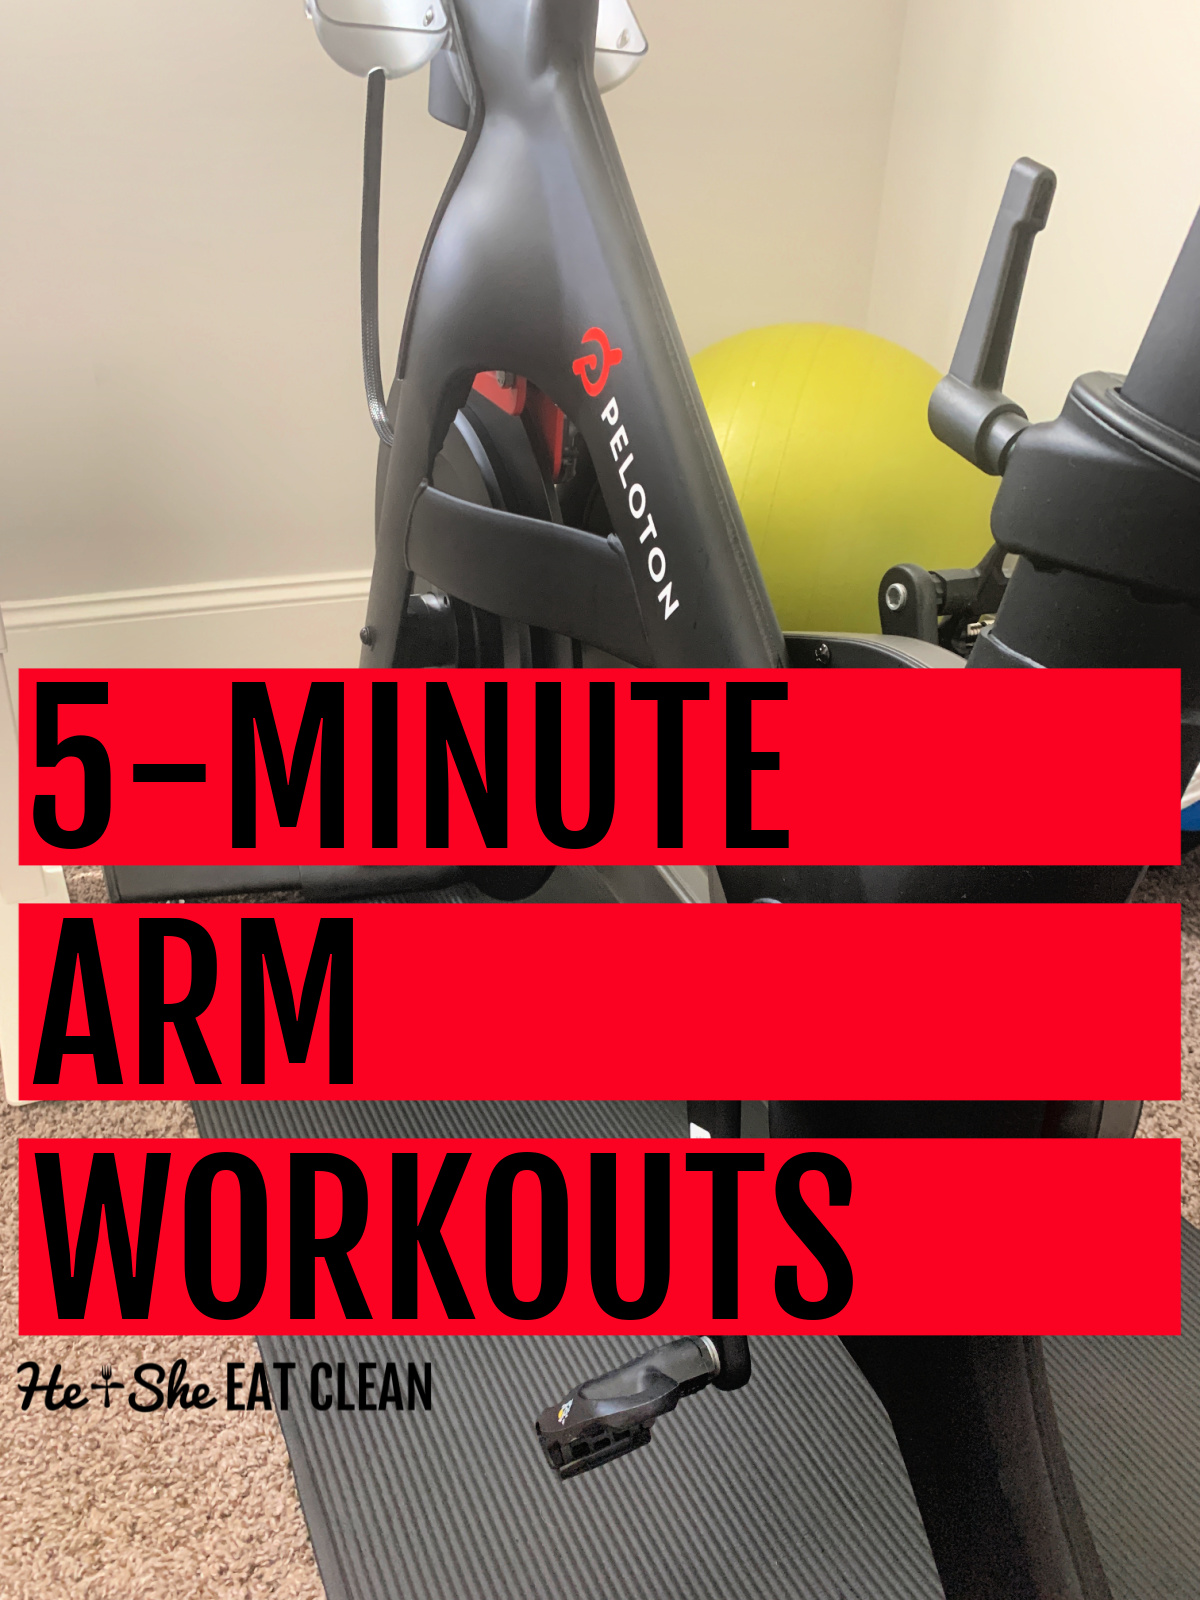 Peloton bike with a yellow exercise ball in the background. Text reads 5-Minute Arm Workouts